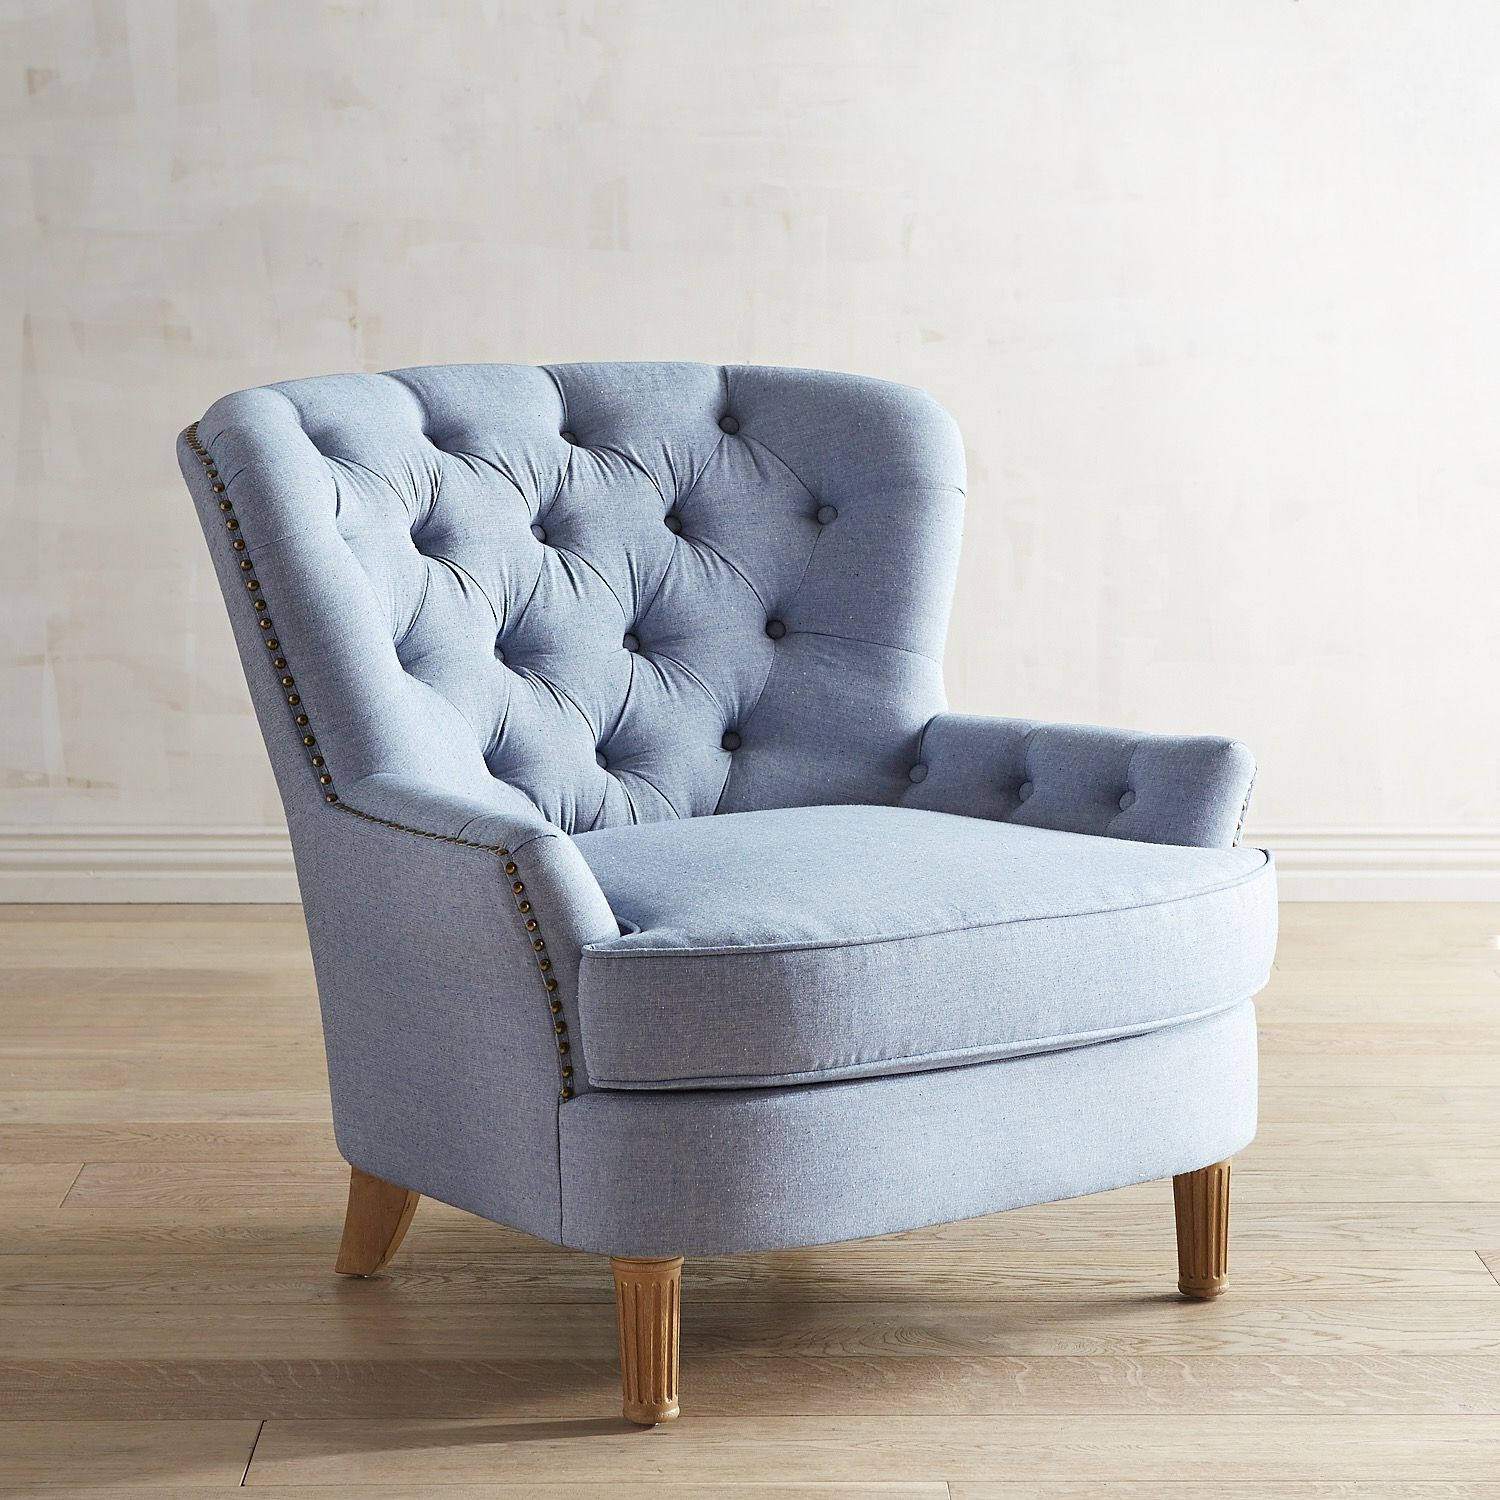 Eliza Chambray Blue Chair Upholstered bedroom